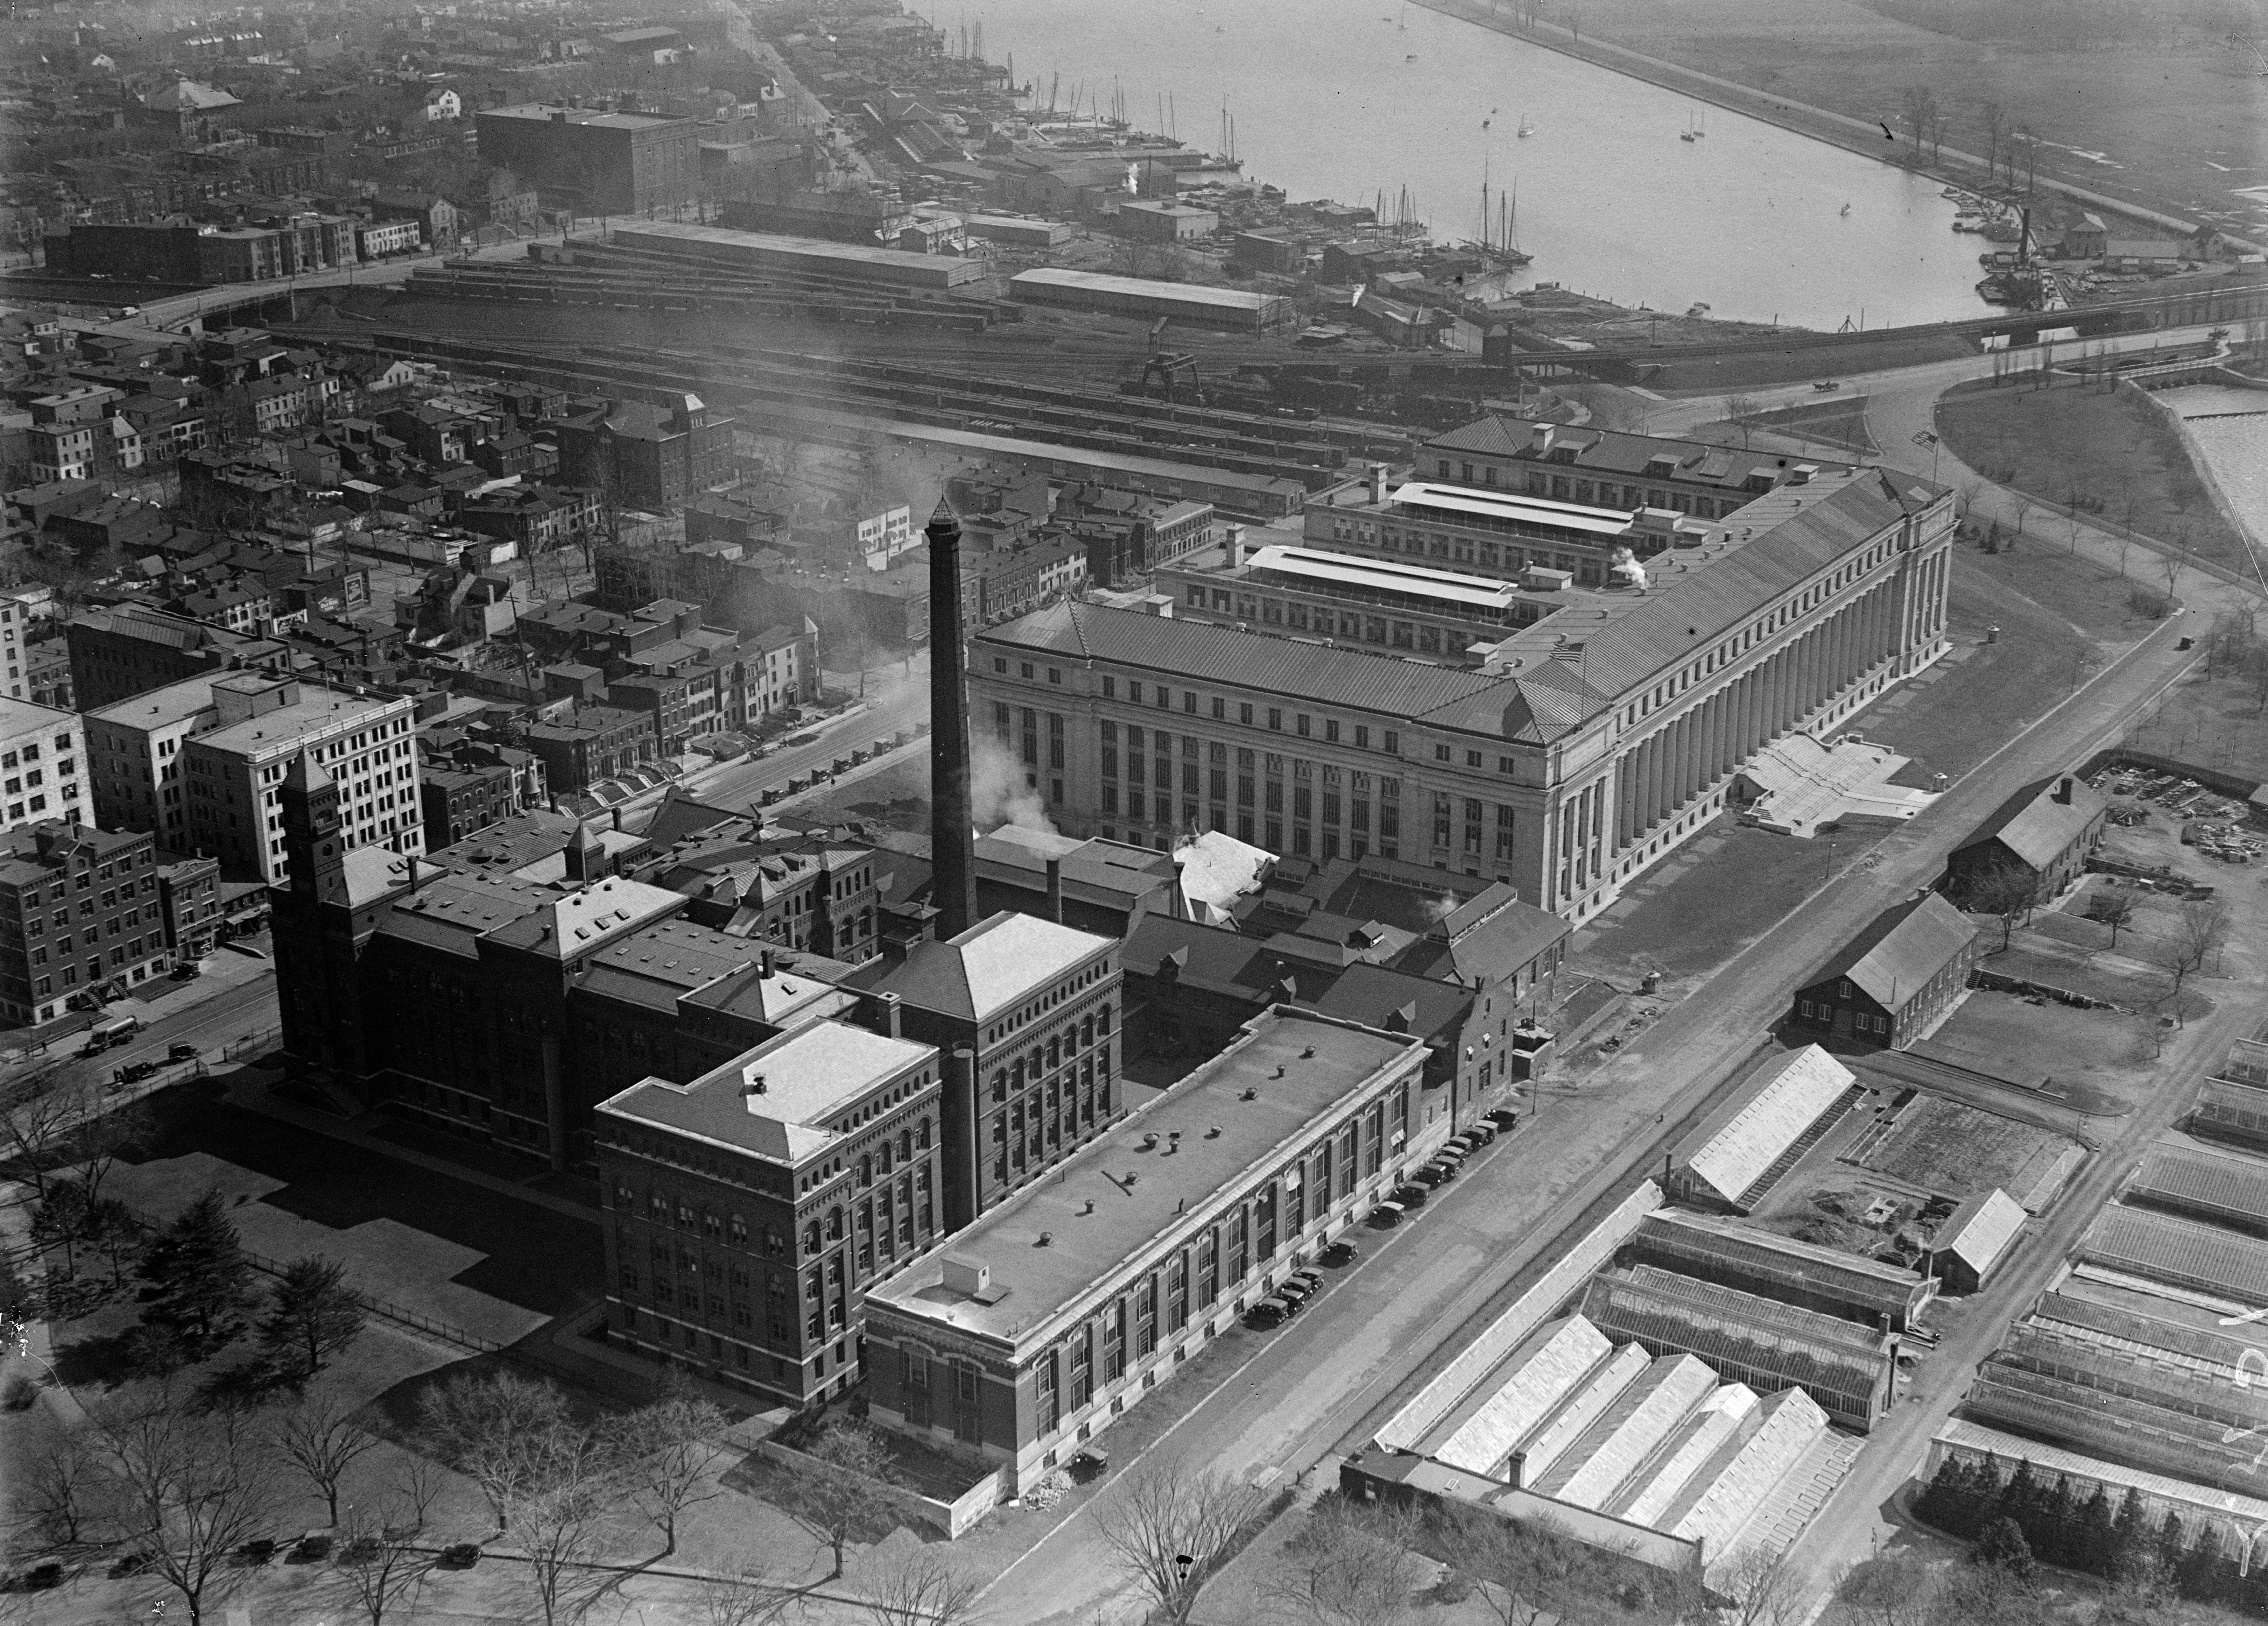 File:bureau of engraving and printing aerial view washington